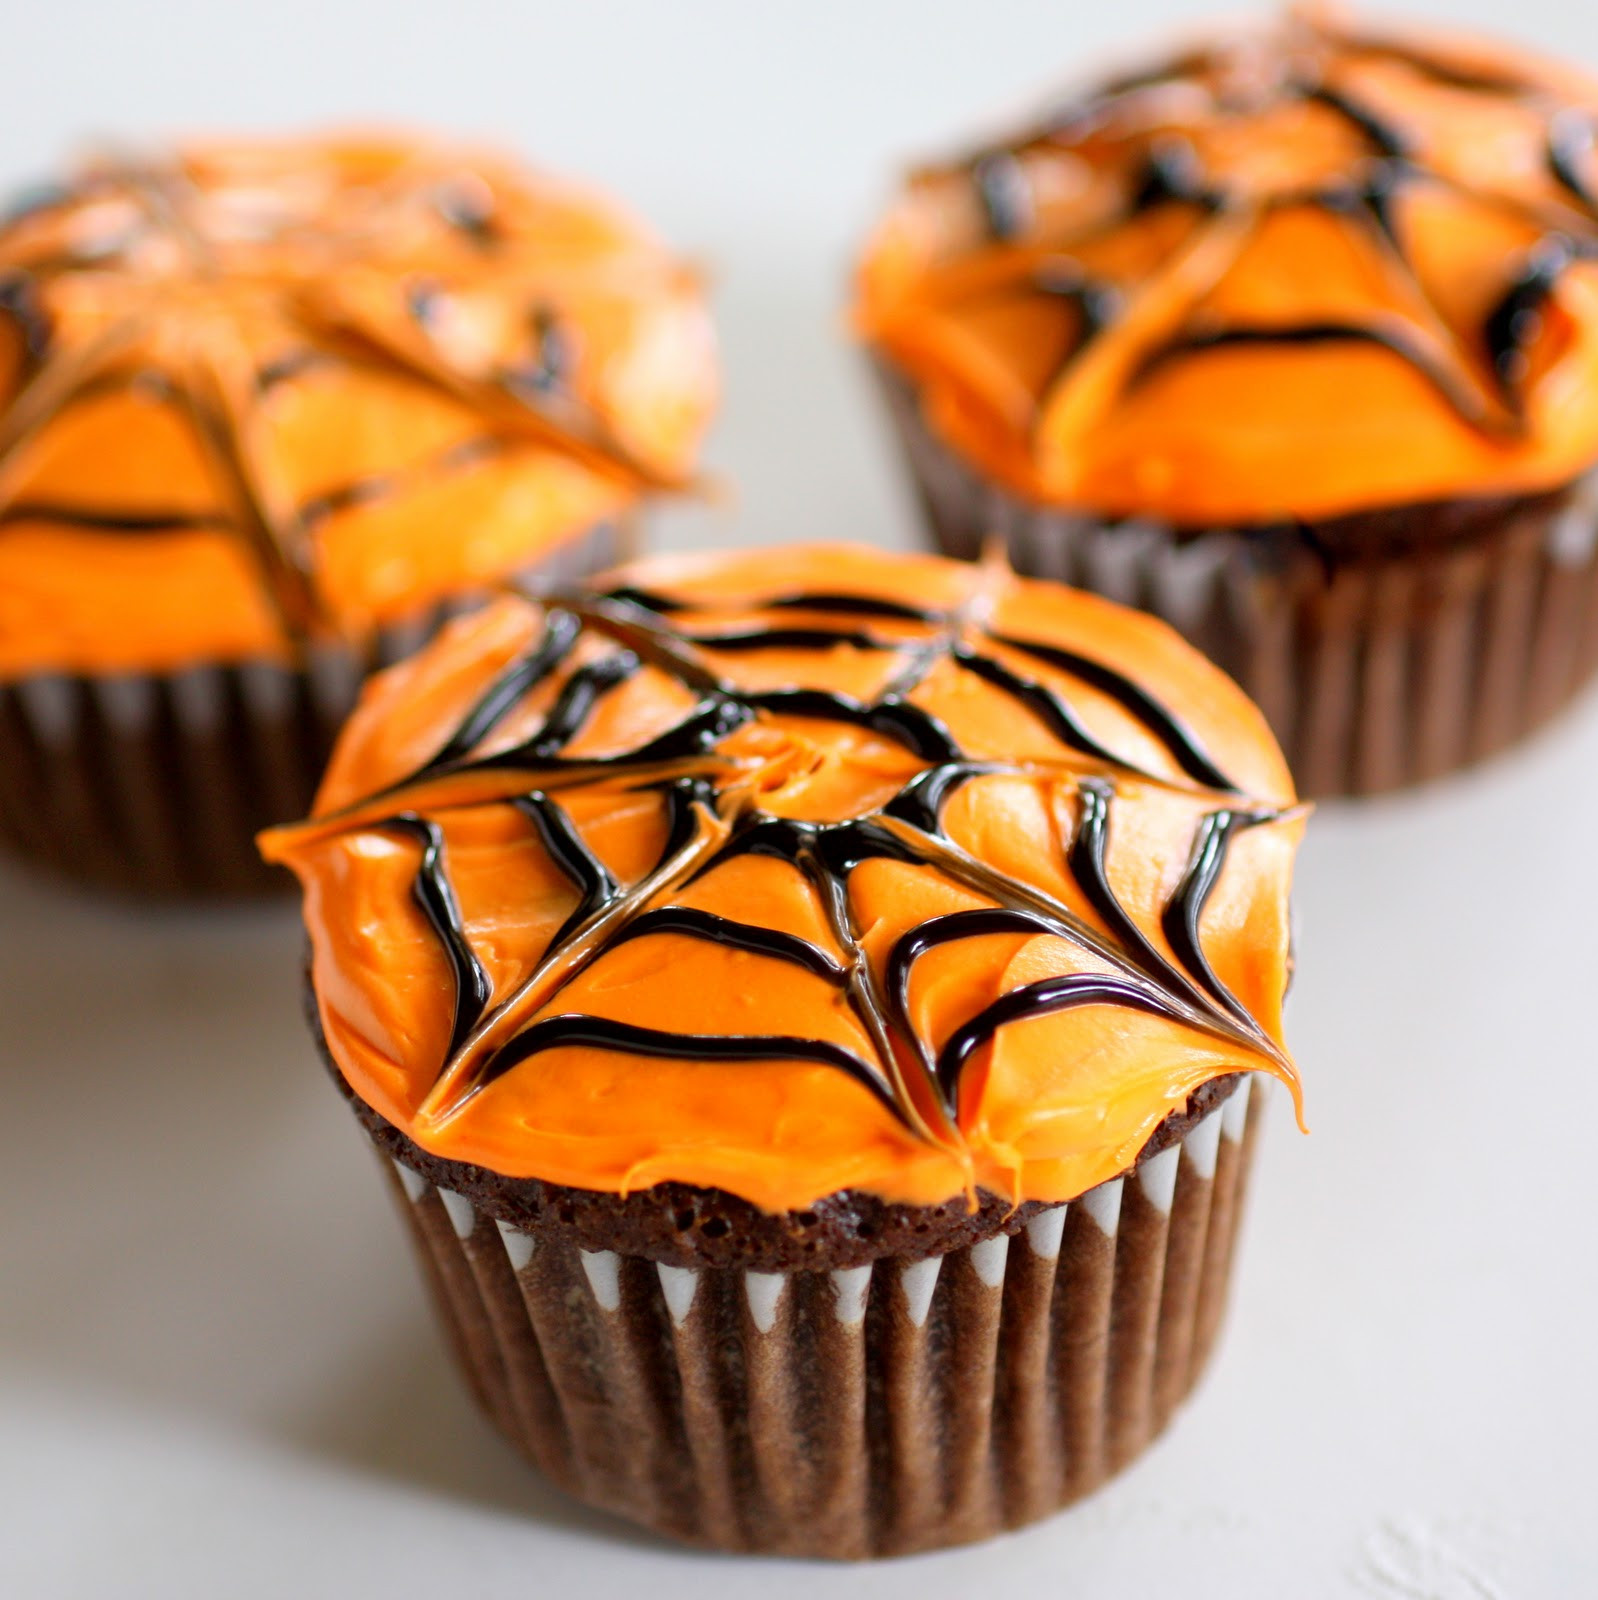 Homemade Halloween Cupcakes  Spiderweb Cupcakes The Girl Who Ate Everything